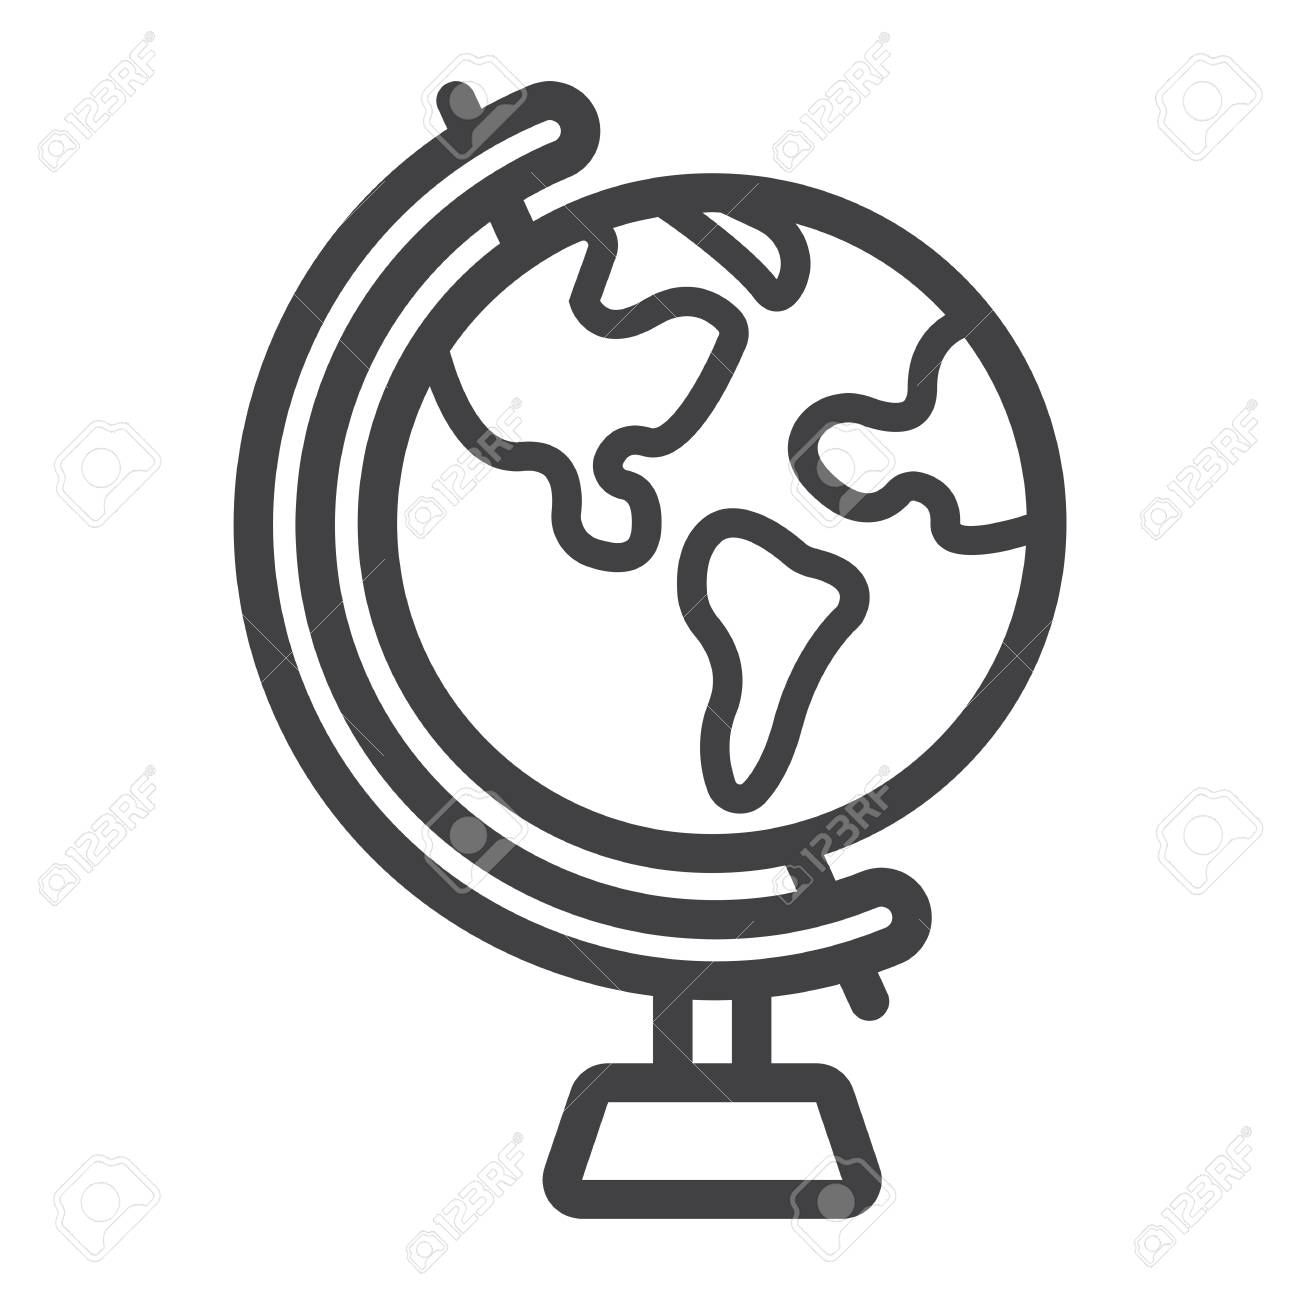 globe line icon world and geography vector graphics a linear rh 123rf com free eps vector graphics eps vector graphics free download